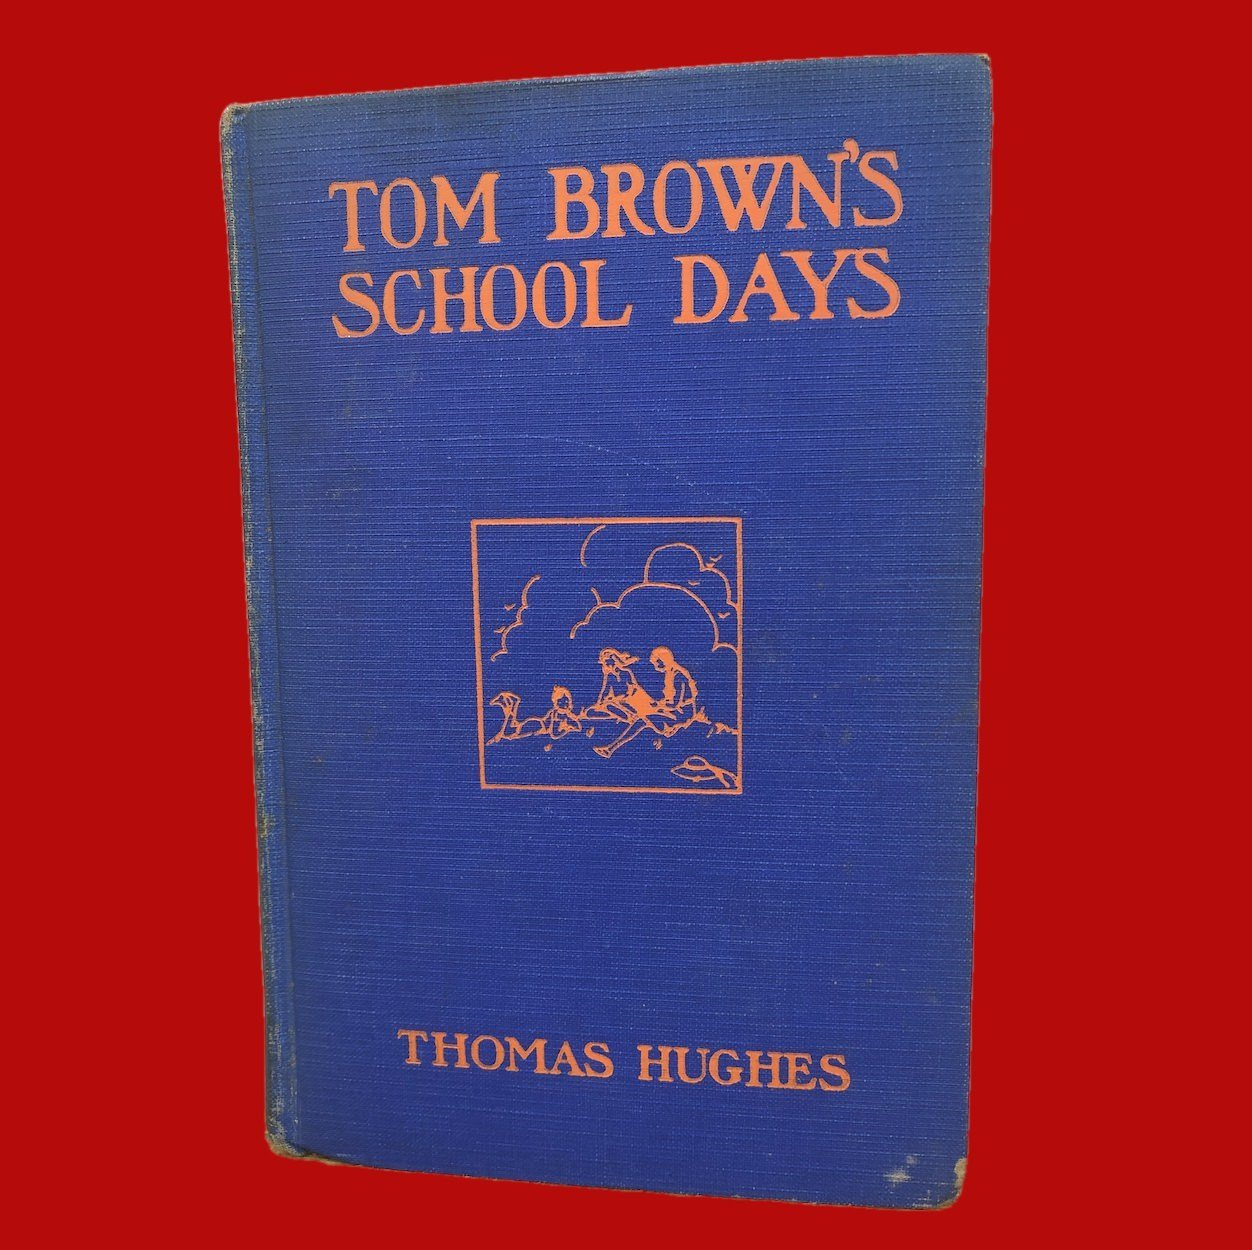 Tom Brown's School Days Book by Thomas Hughes 1935